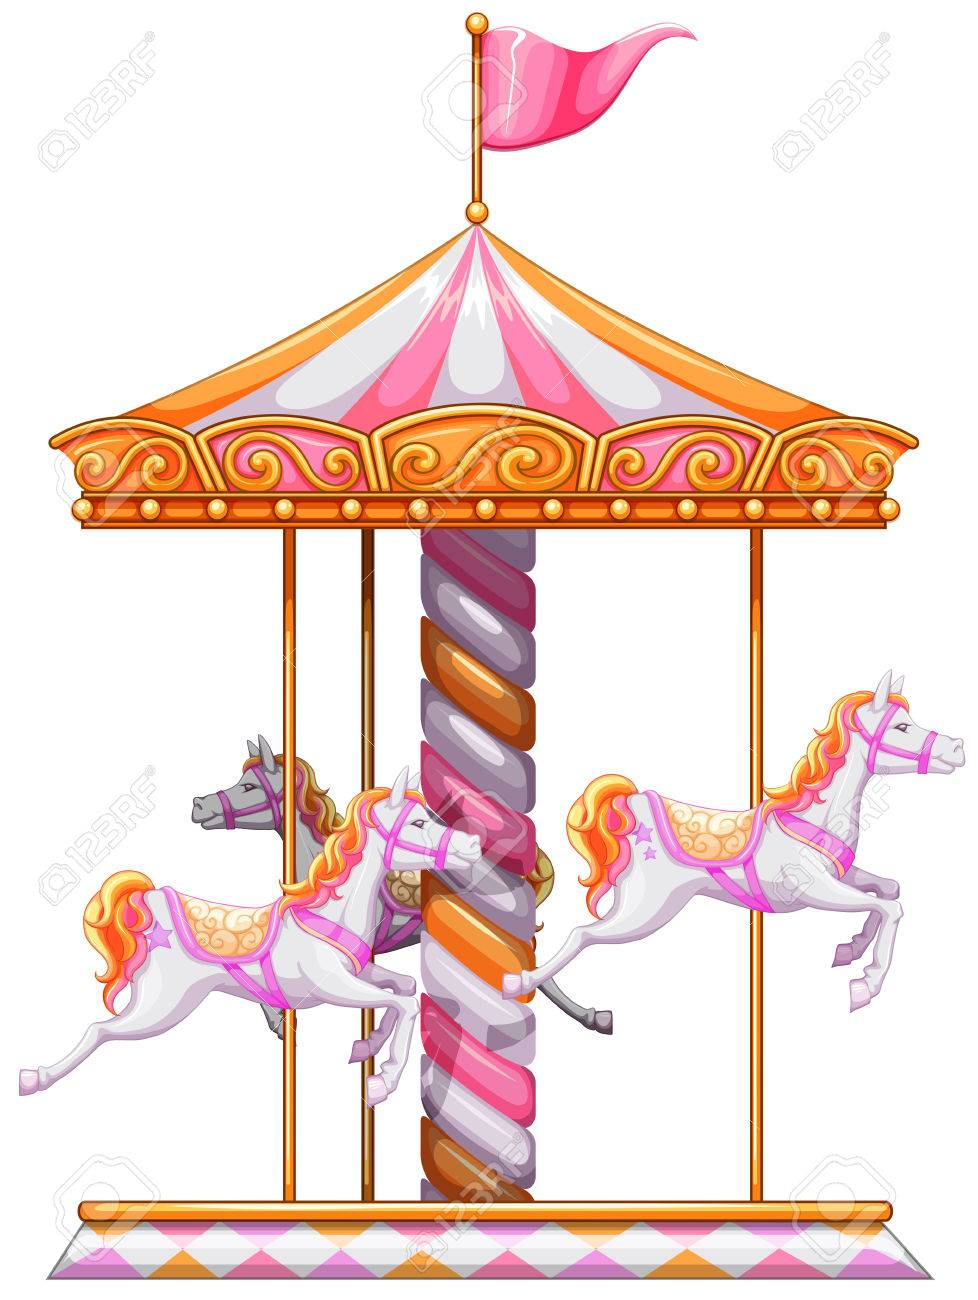 Illustration Of A Colourful Merry Go Round On White Background